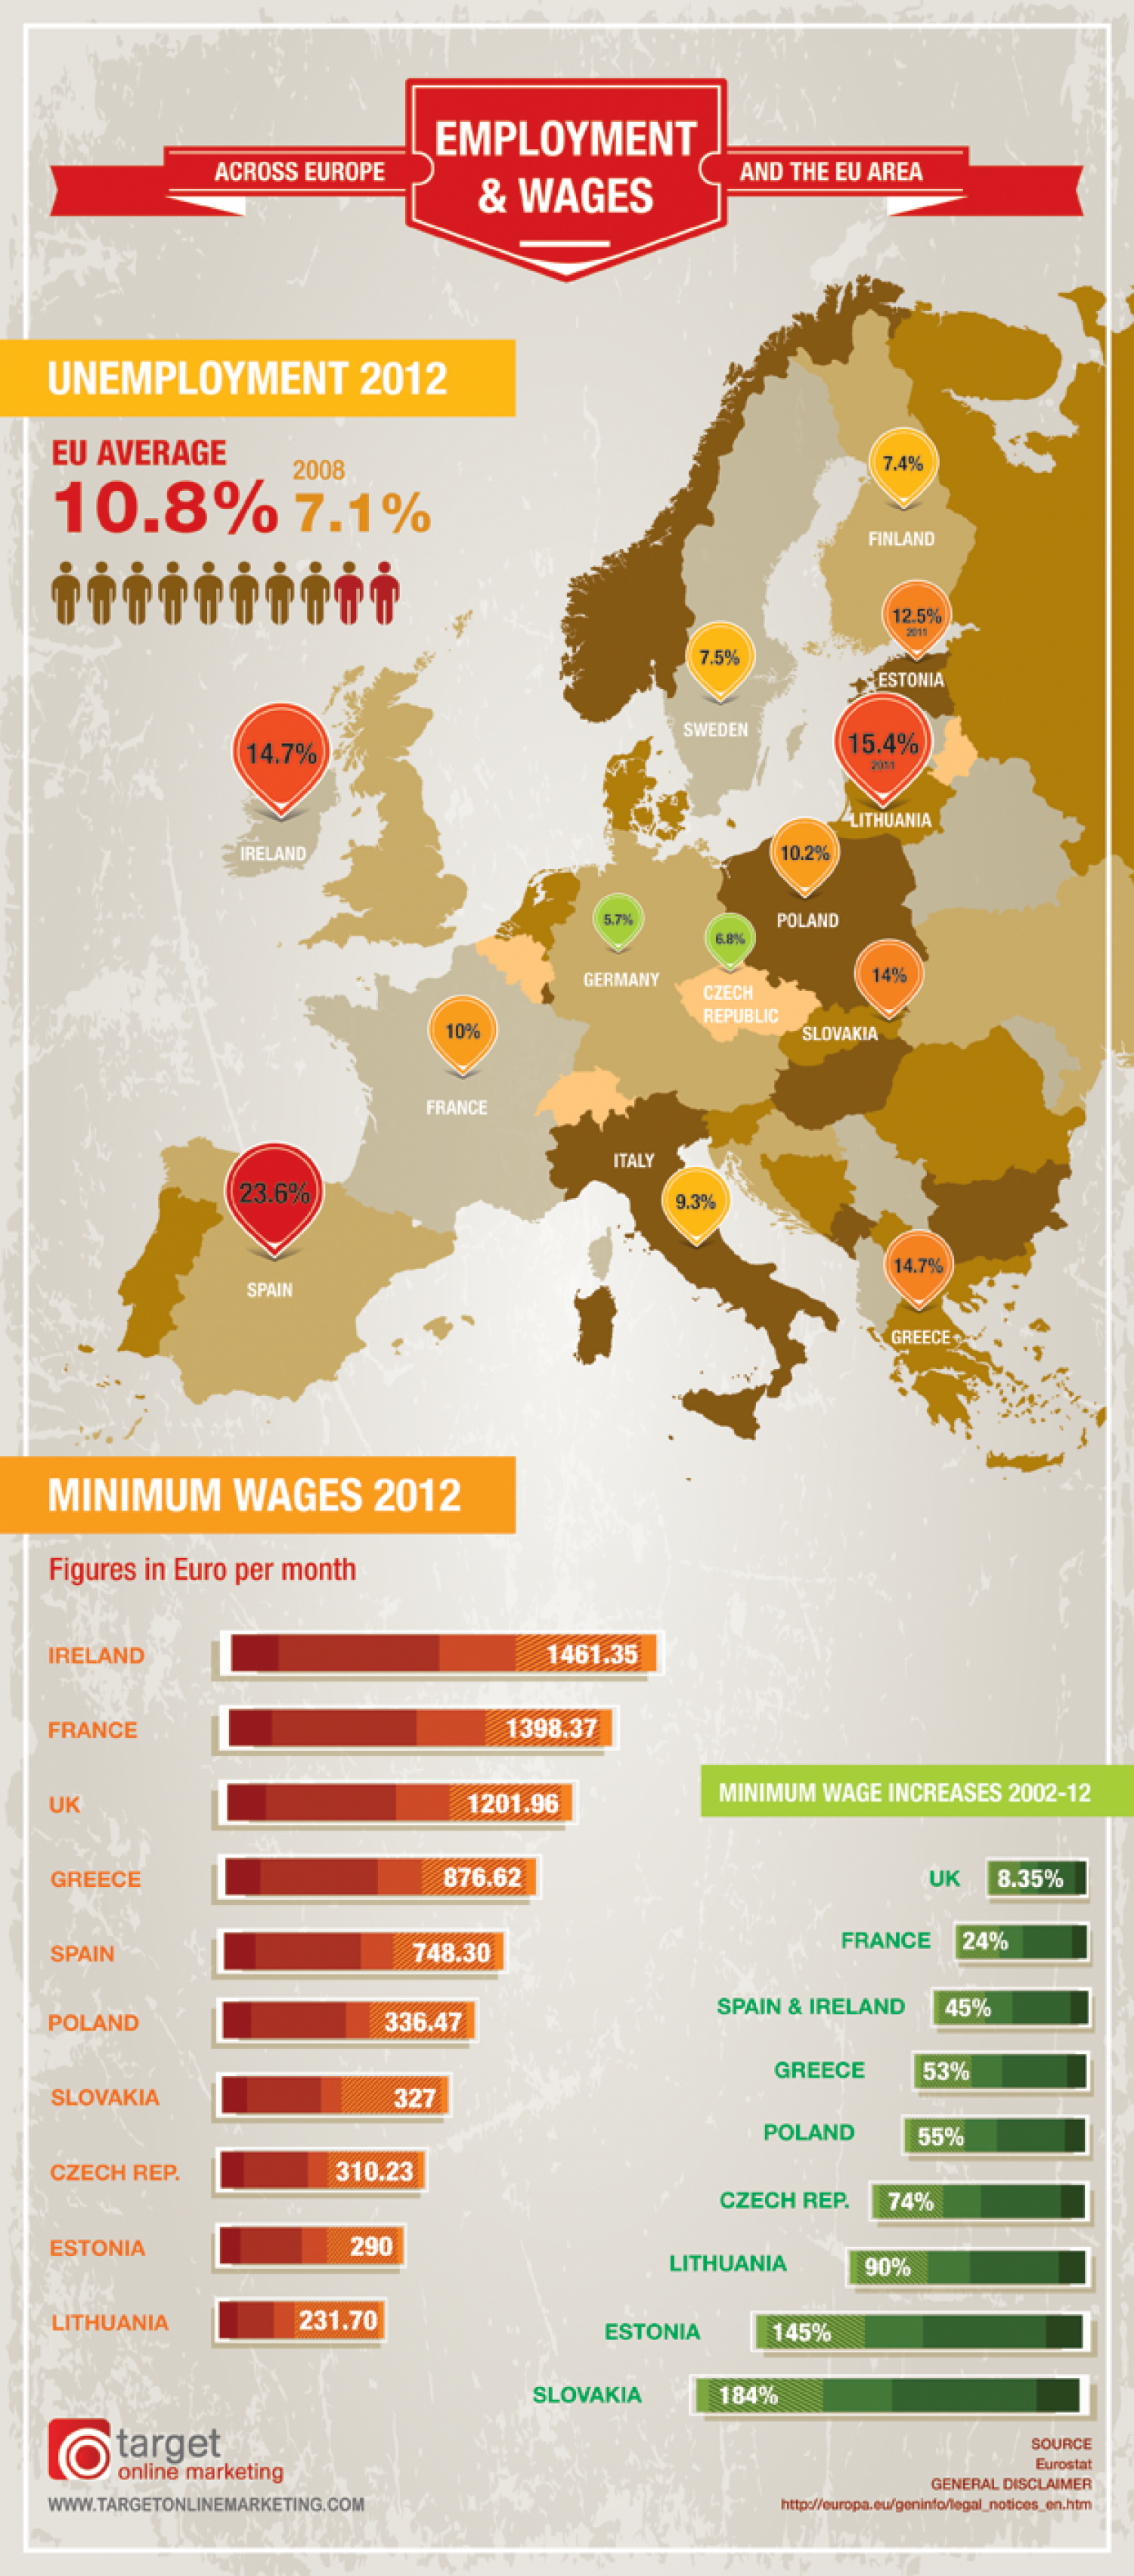 Unemployment in Europe vs Minimum EU Wages 2012 Infographic